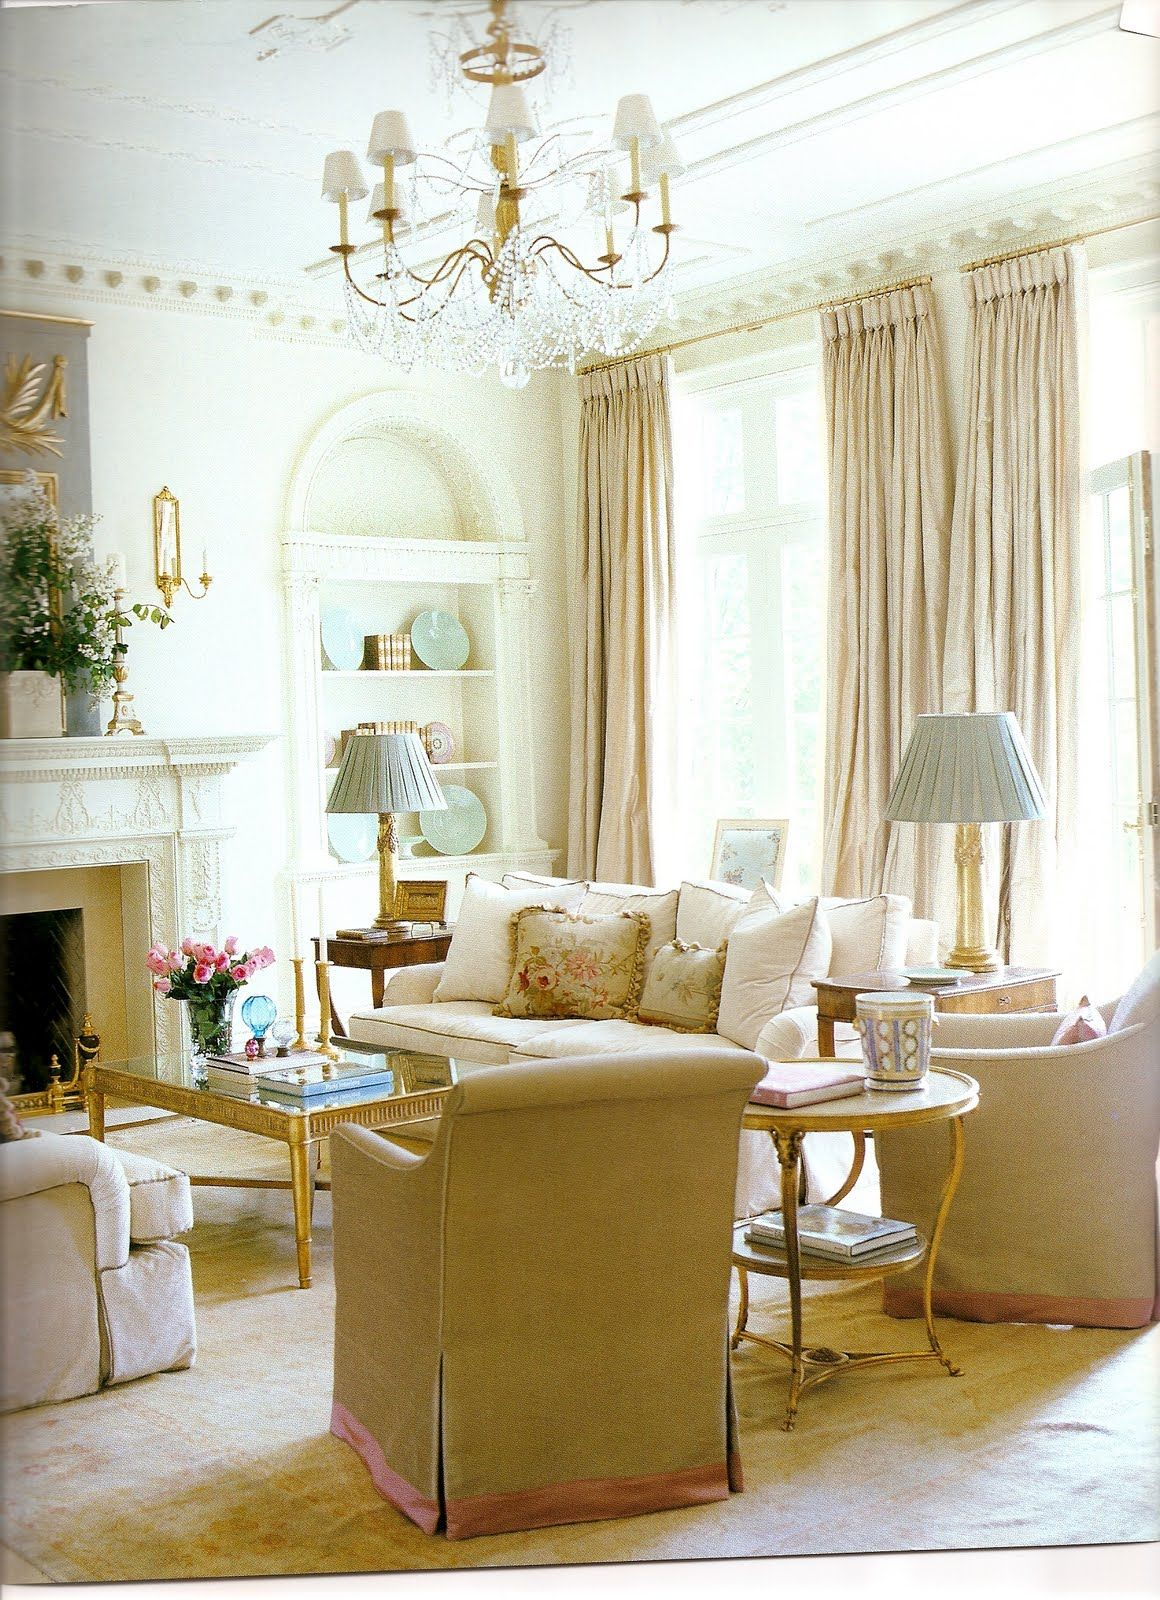 I tend to lean to contrast, but this neutral room is just beautiful ...